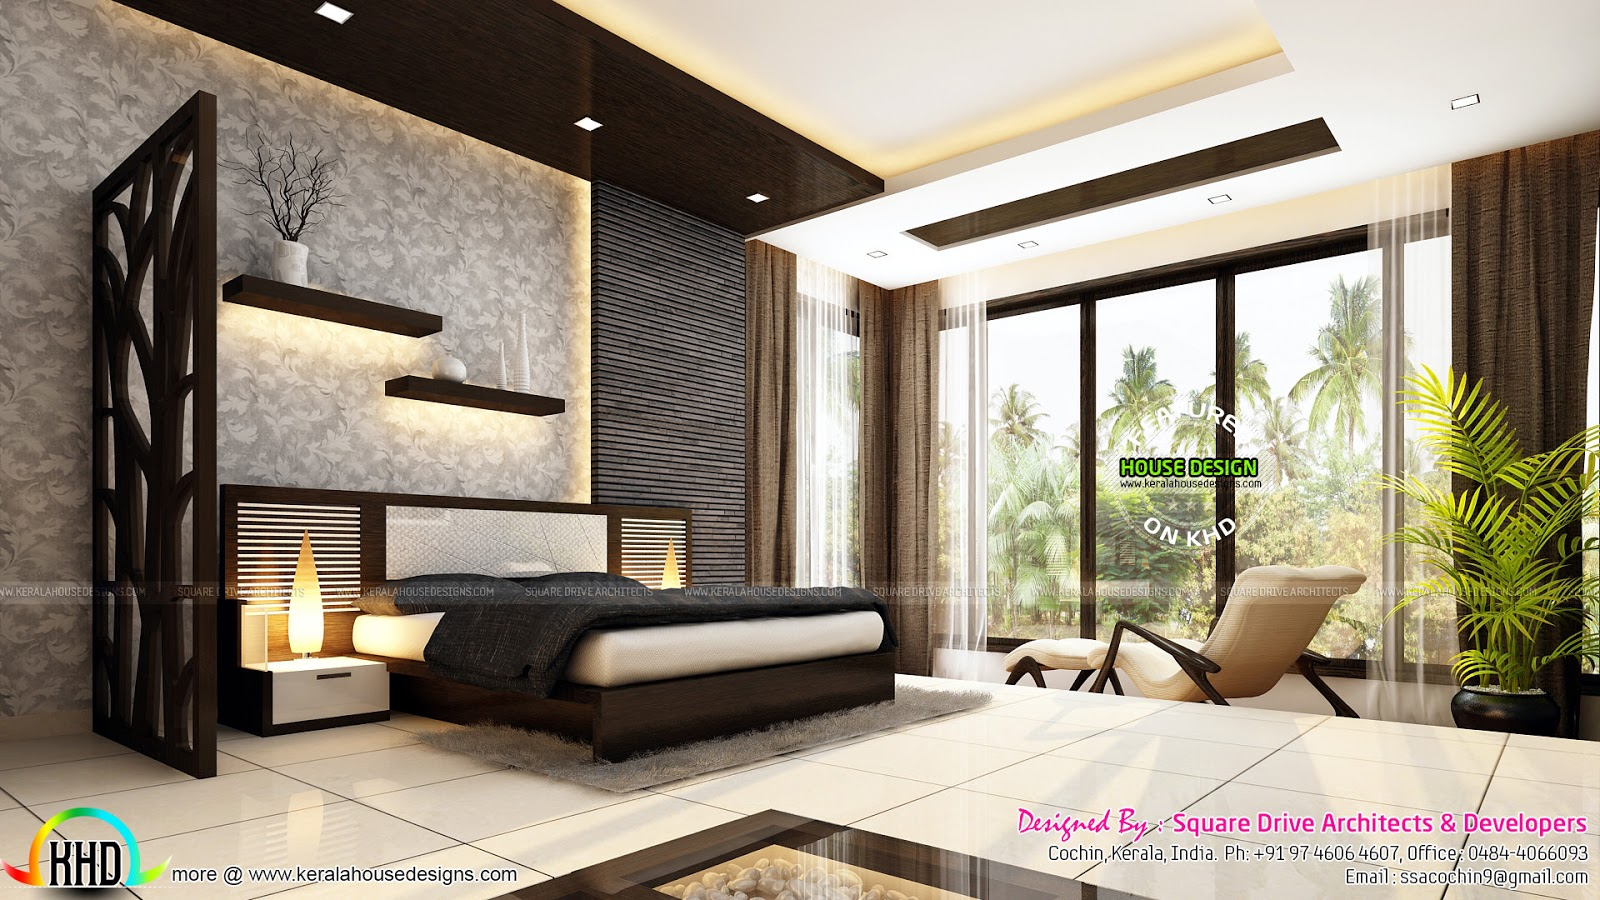 Very beautiful modern interior designs kerala home Interiors for homes